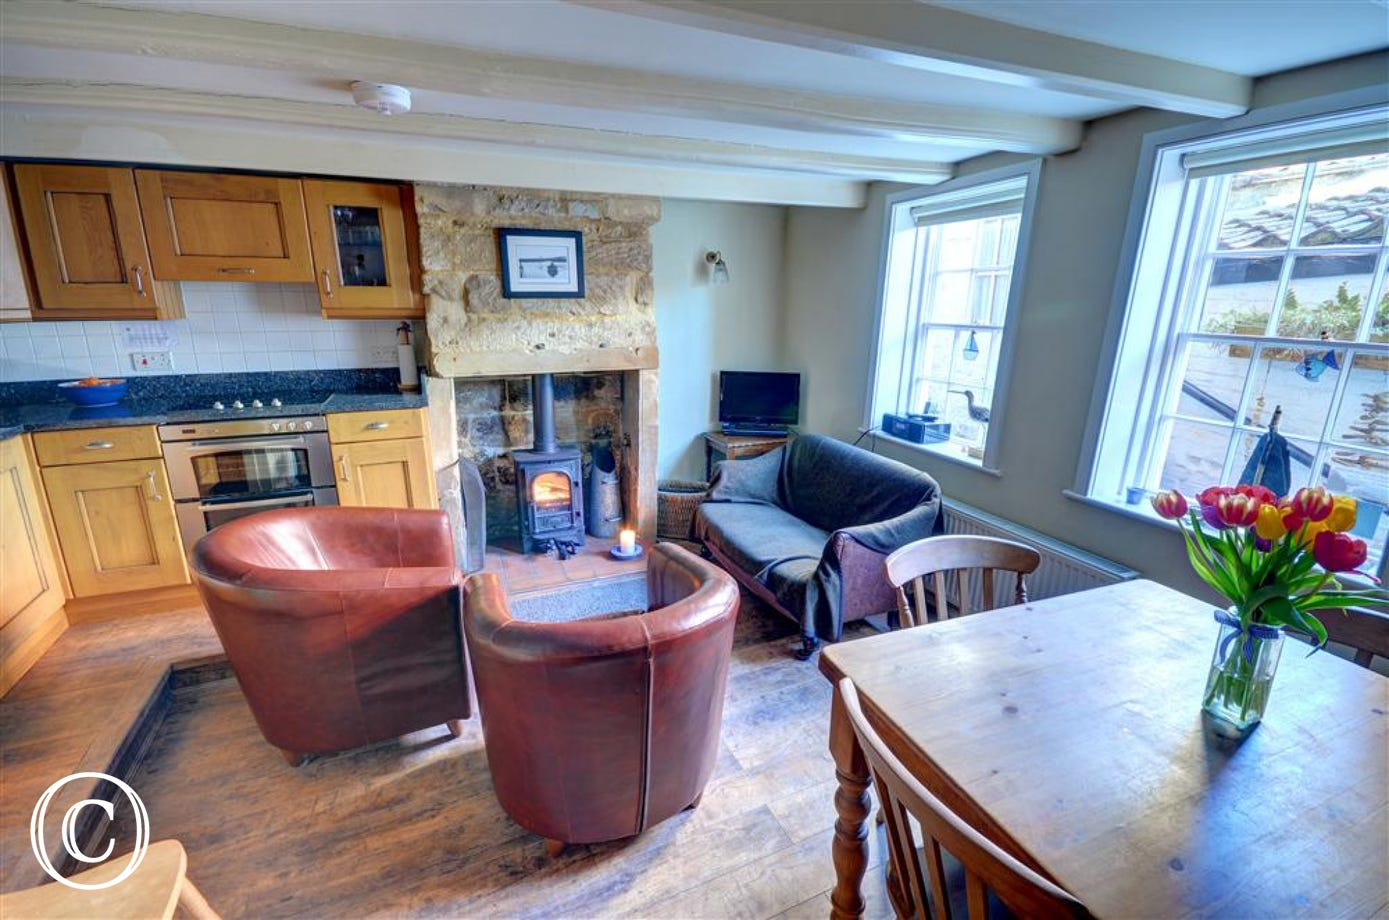 Lounge/Diner with Inglenook fireplace, woodburner and wooden table and chairs.